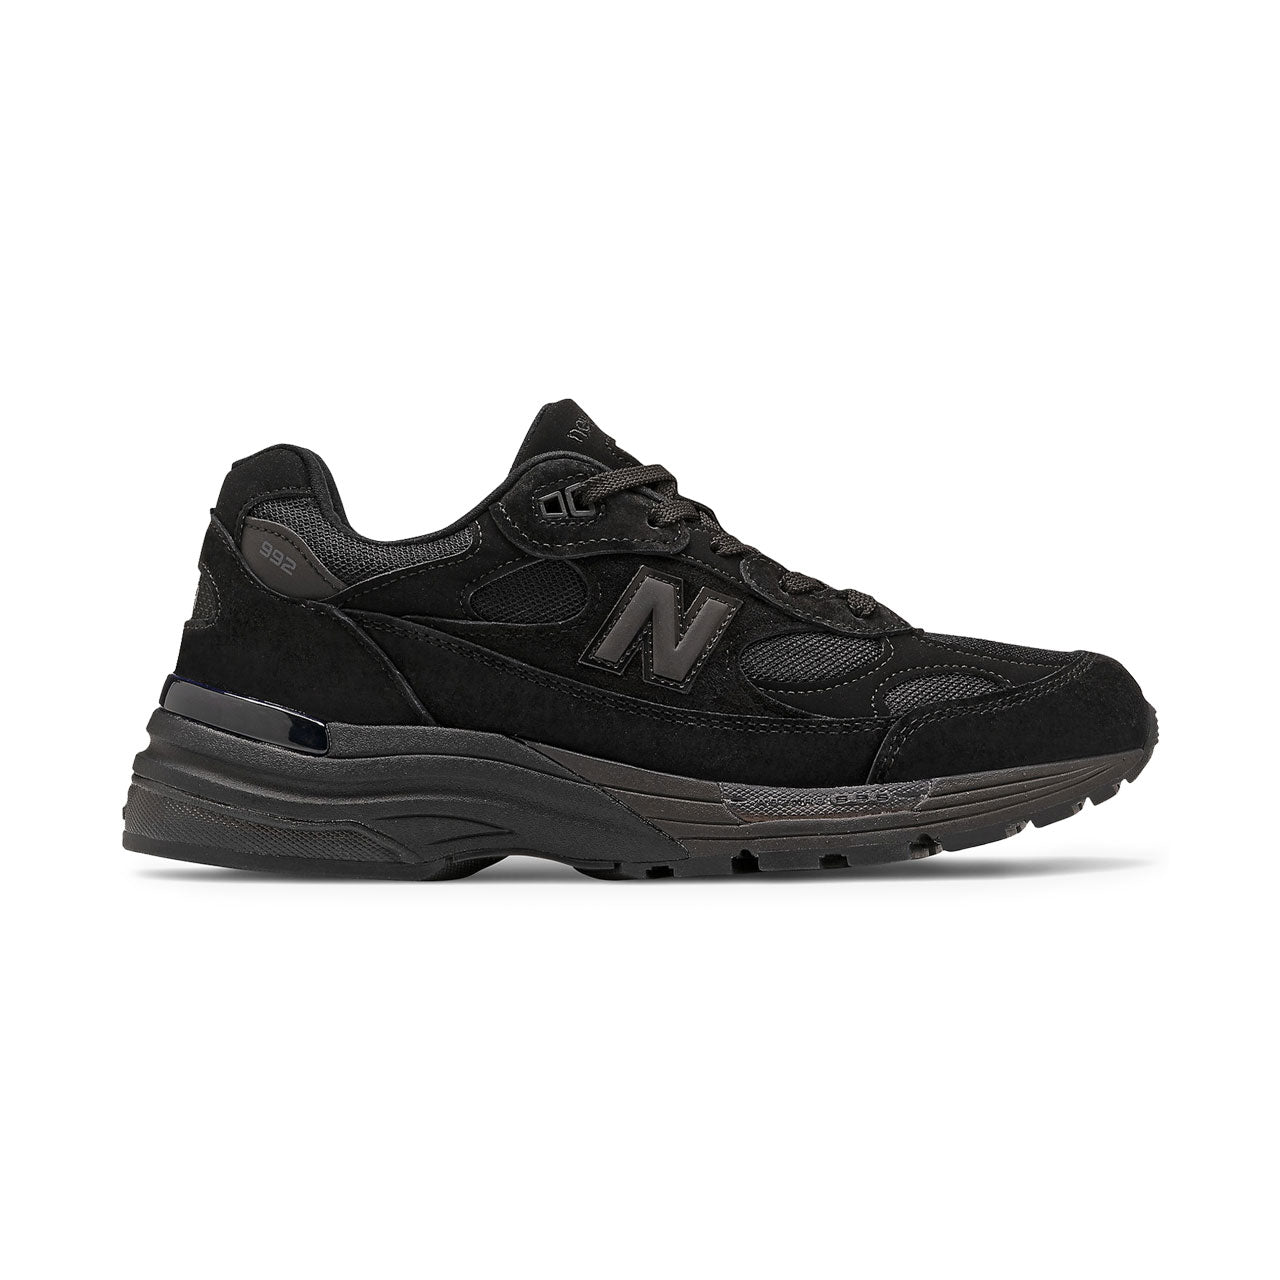 New Balance 992 All-Black Sneakers